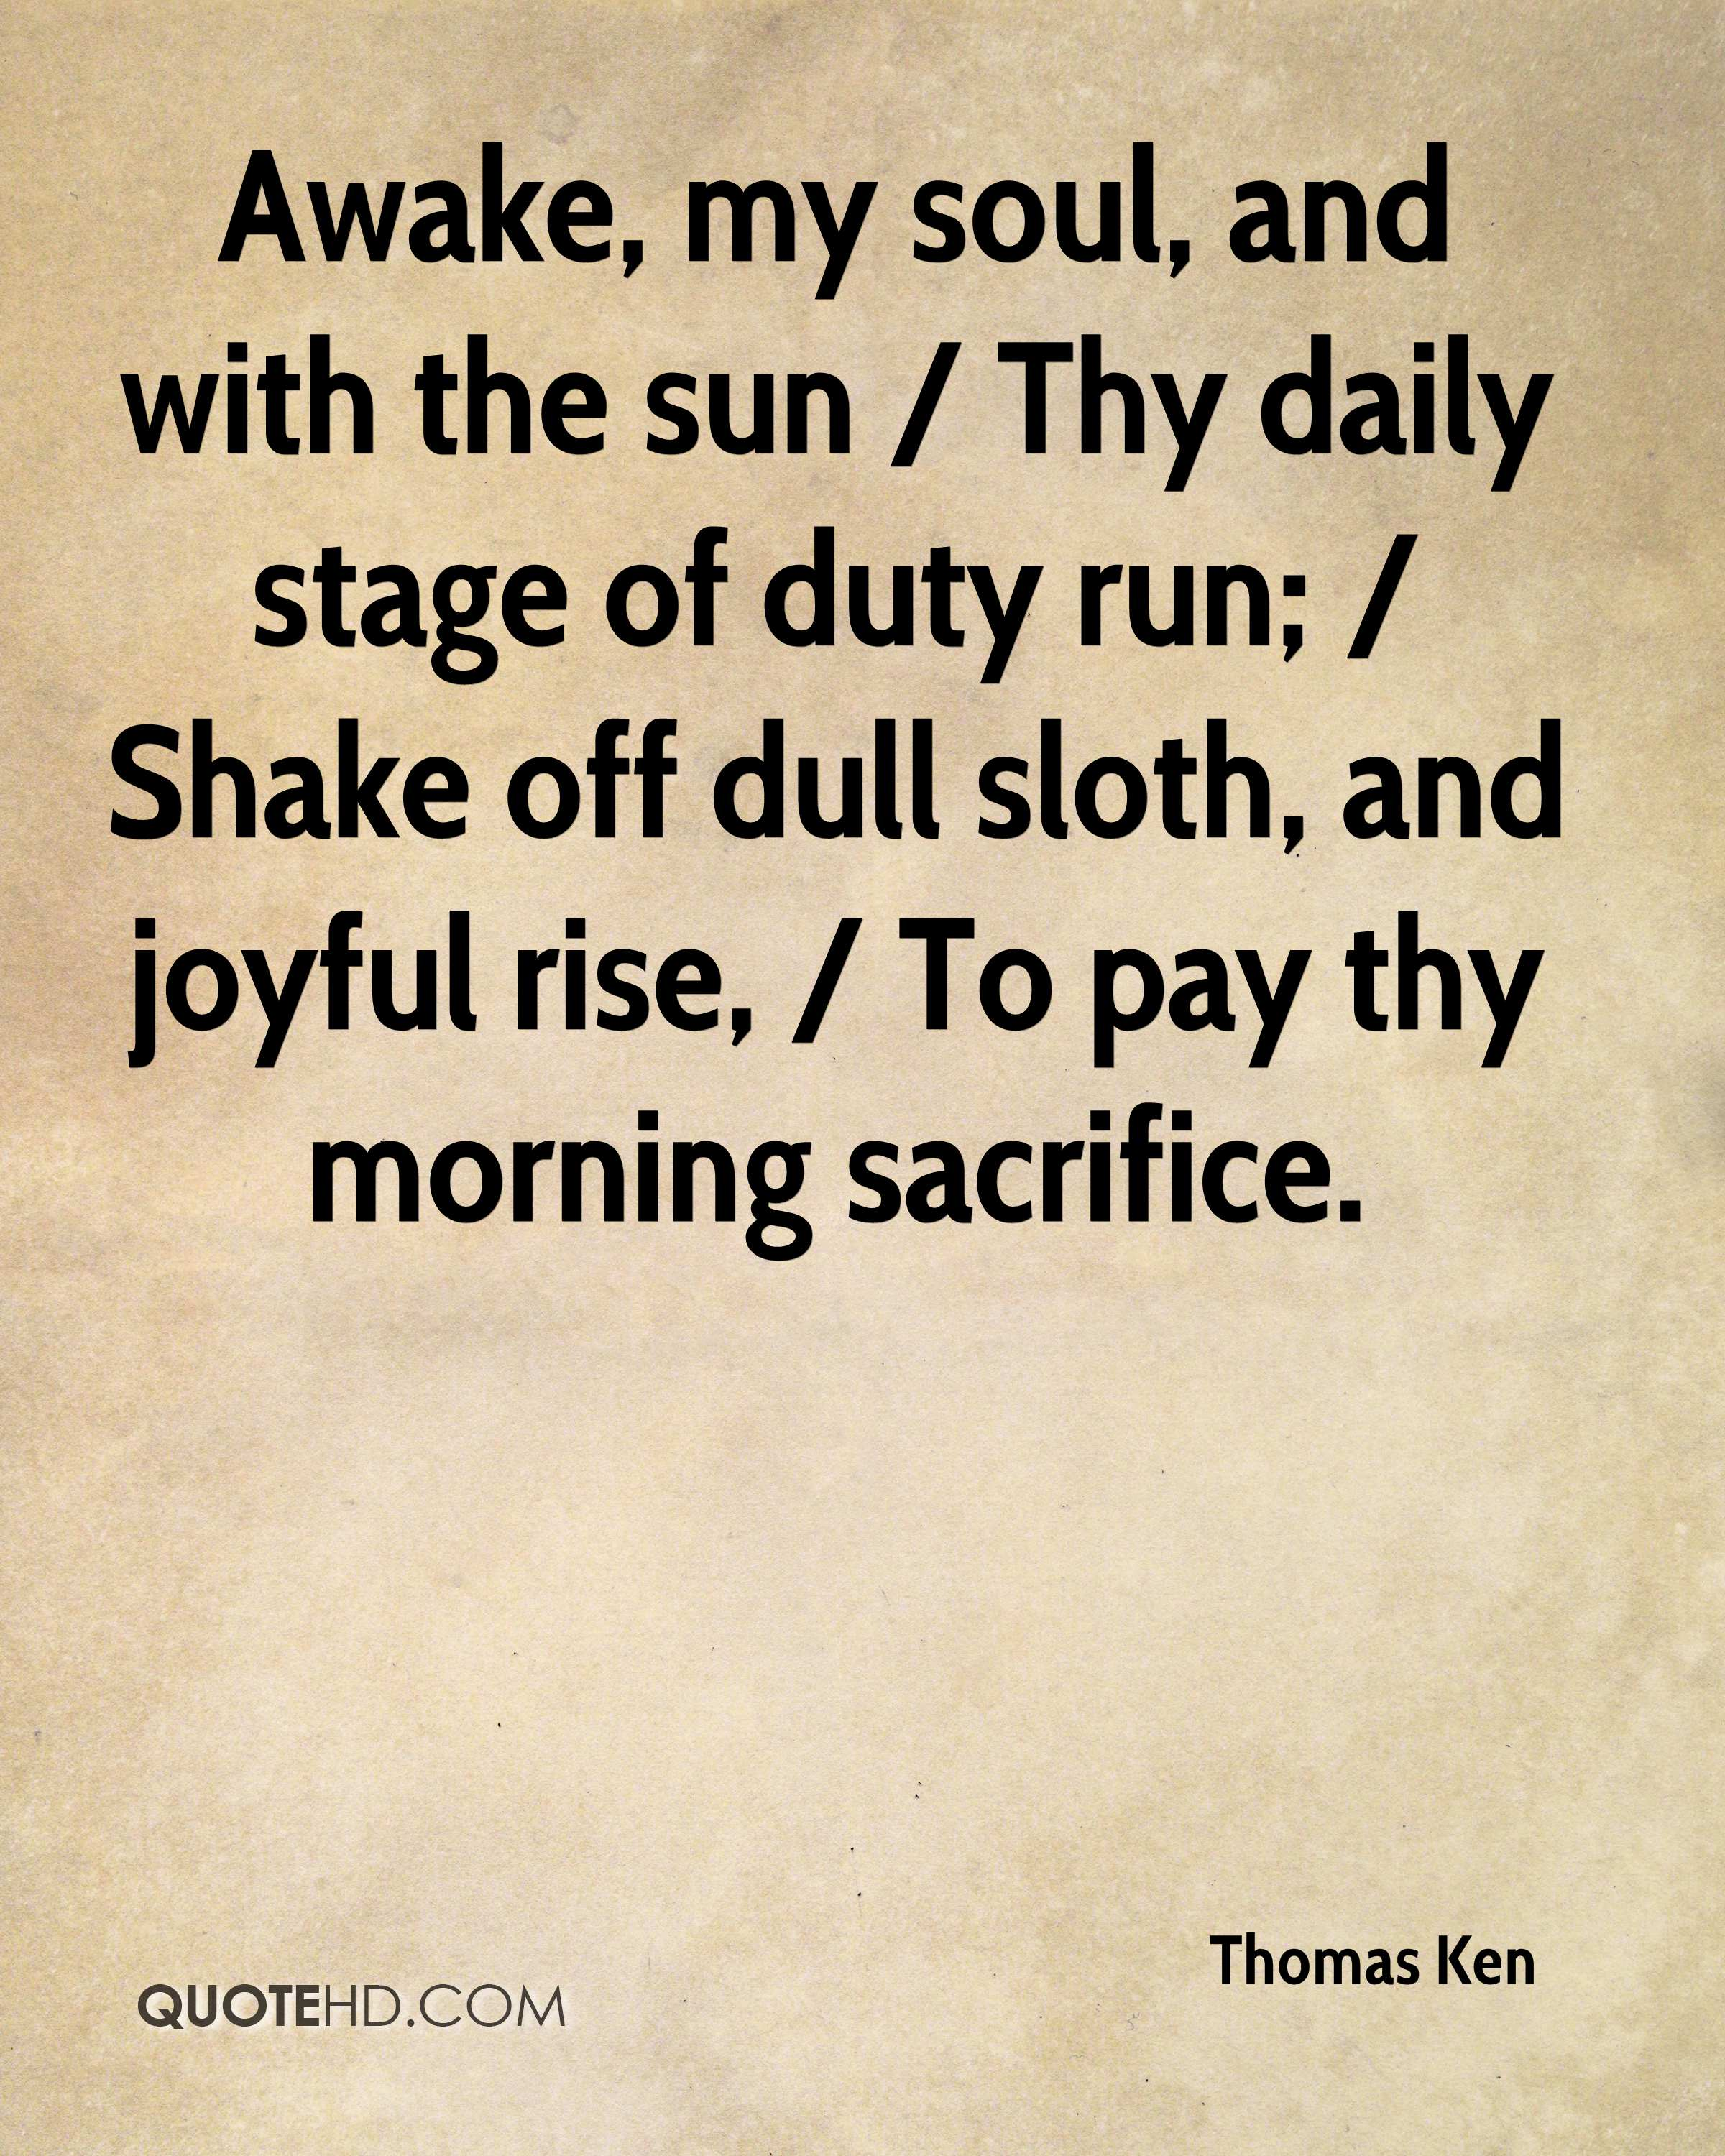 Awake, my soul, and with the sun / Thy daily stage of duty run; / Shake off dull sloth, and joyful rise, / To pay thy morning sacrifice.